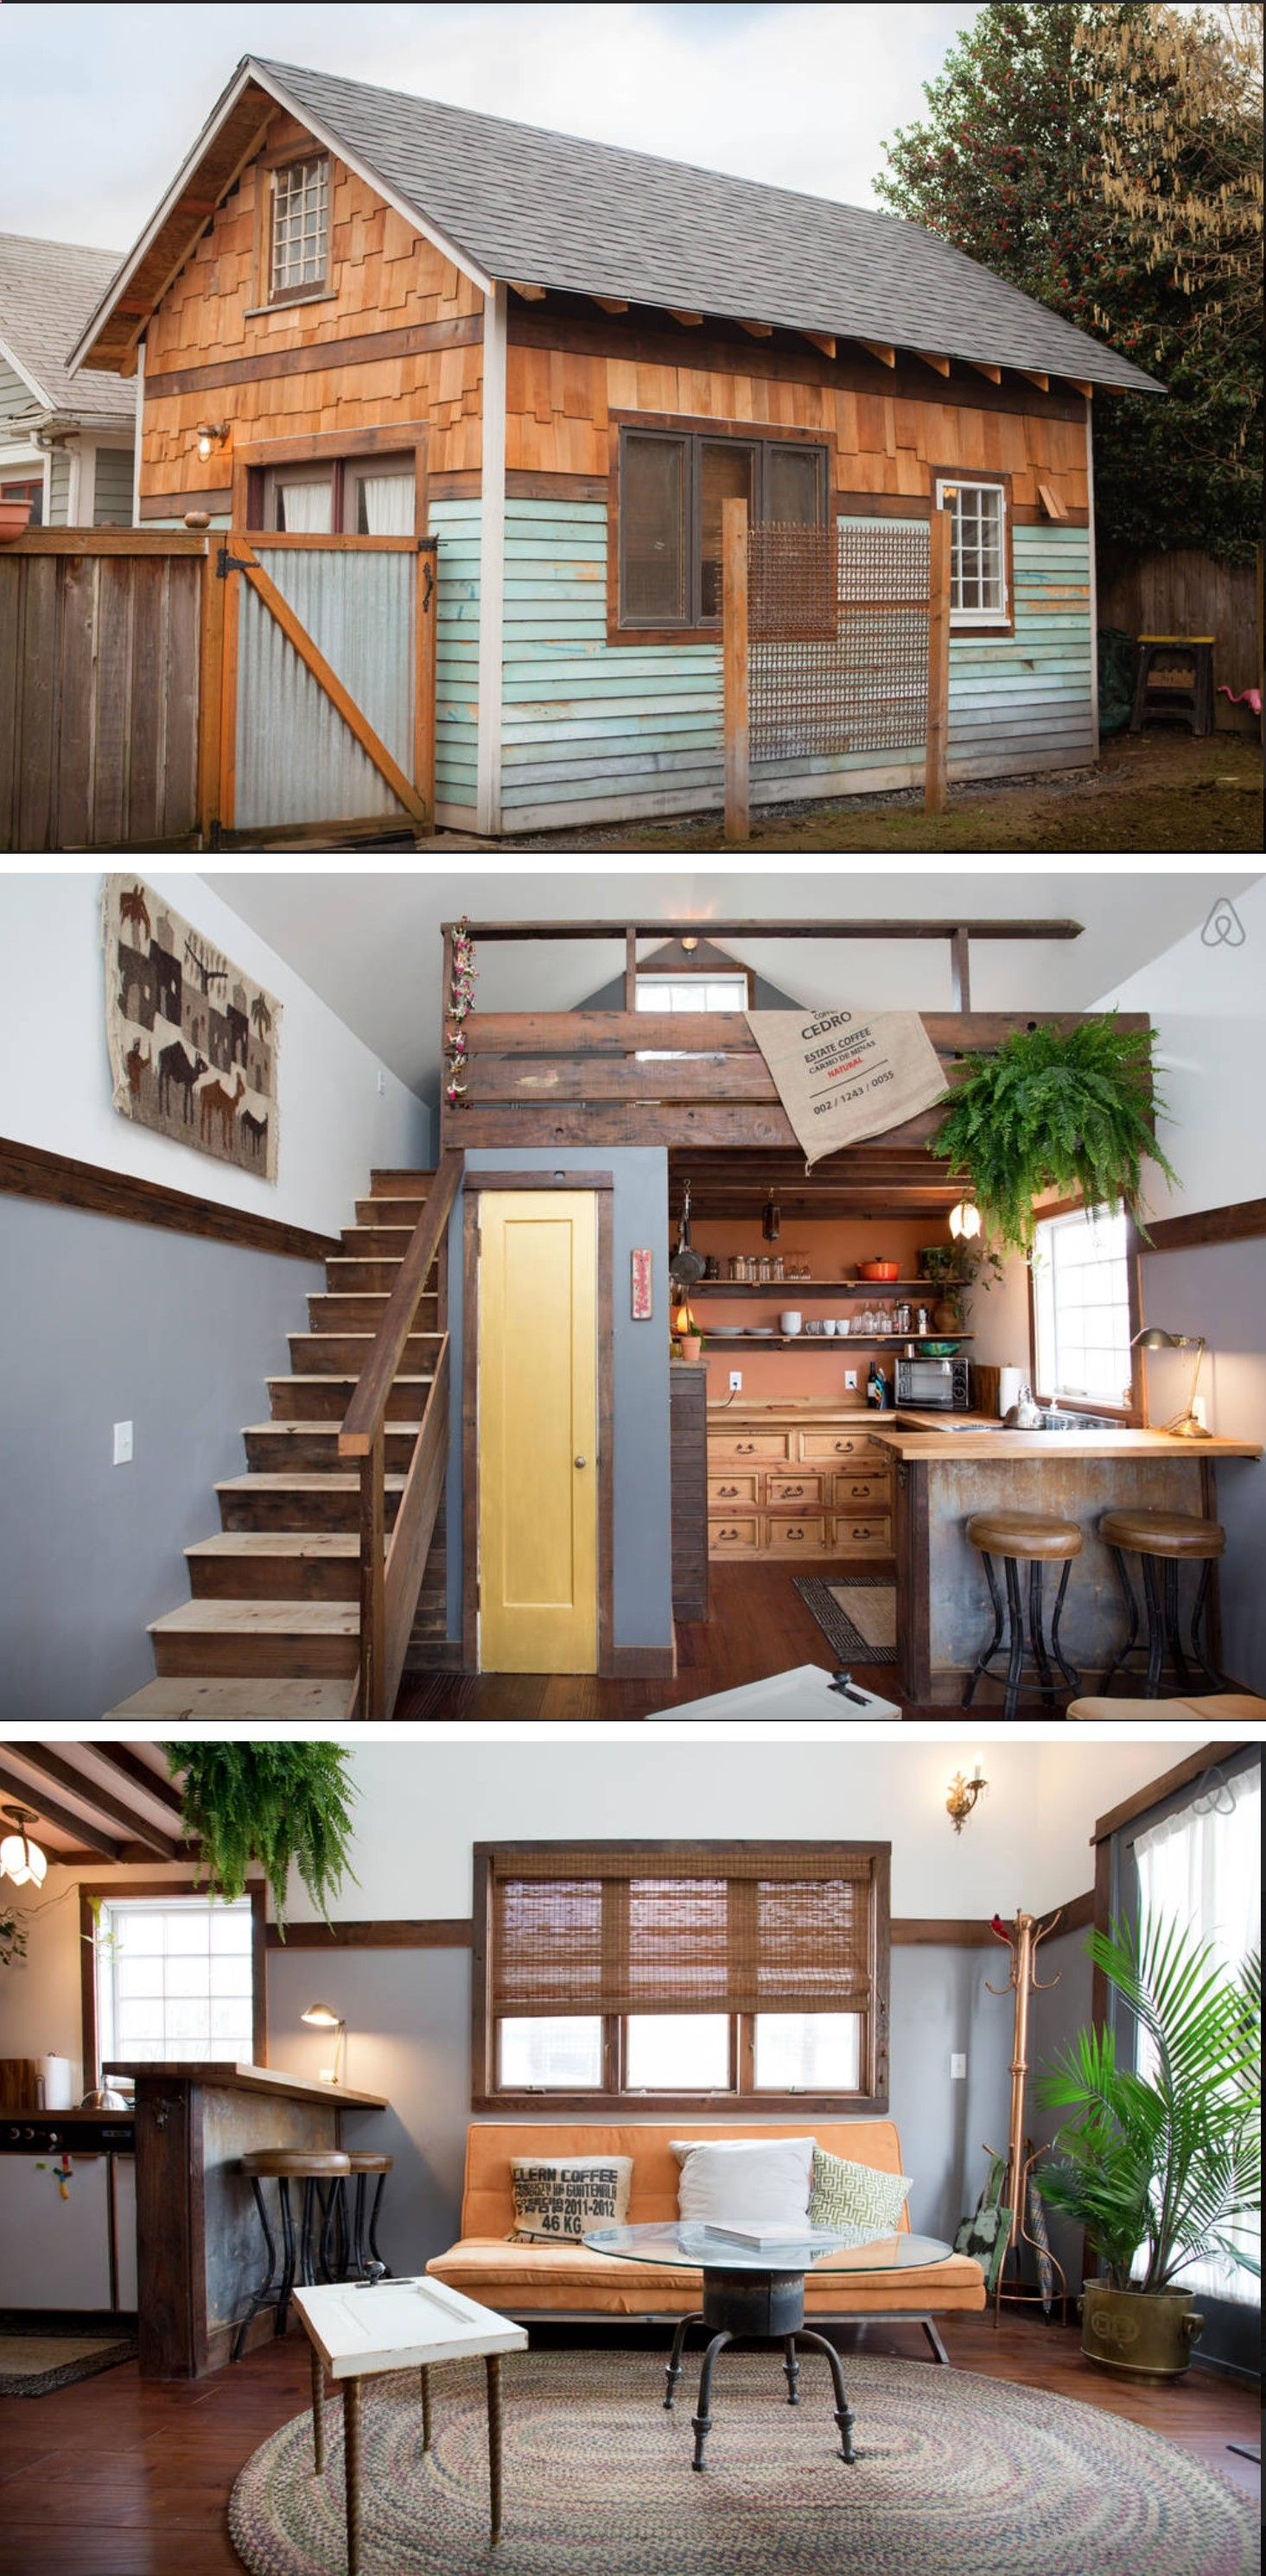 agreeable tiny house portland oregon. Portland  OR USA Seen on the TV show Tiny House Nation 350 sq ft Rustic Modern was designed and built by us your friendly AirBNB hosts